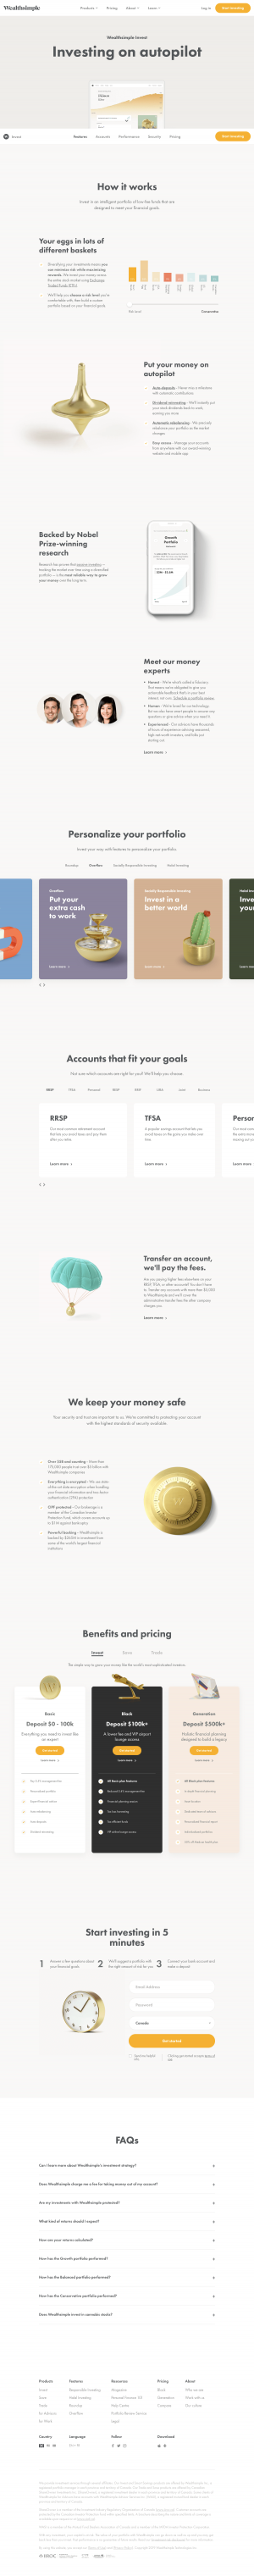 Wealthsimple - Features page